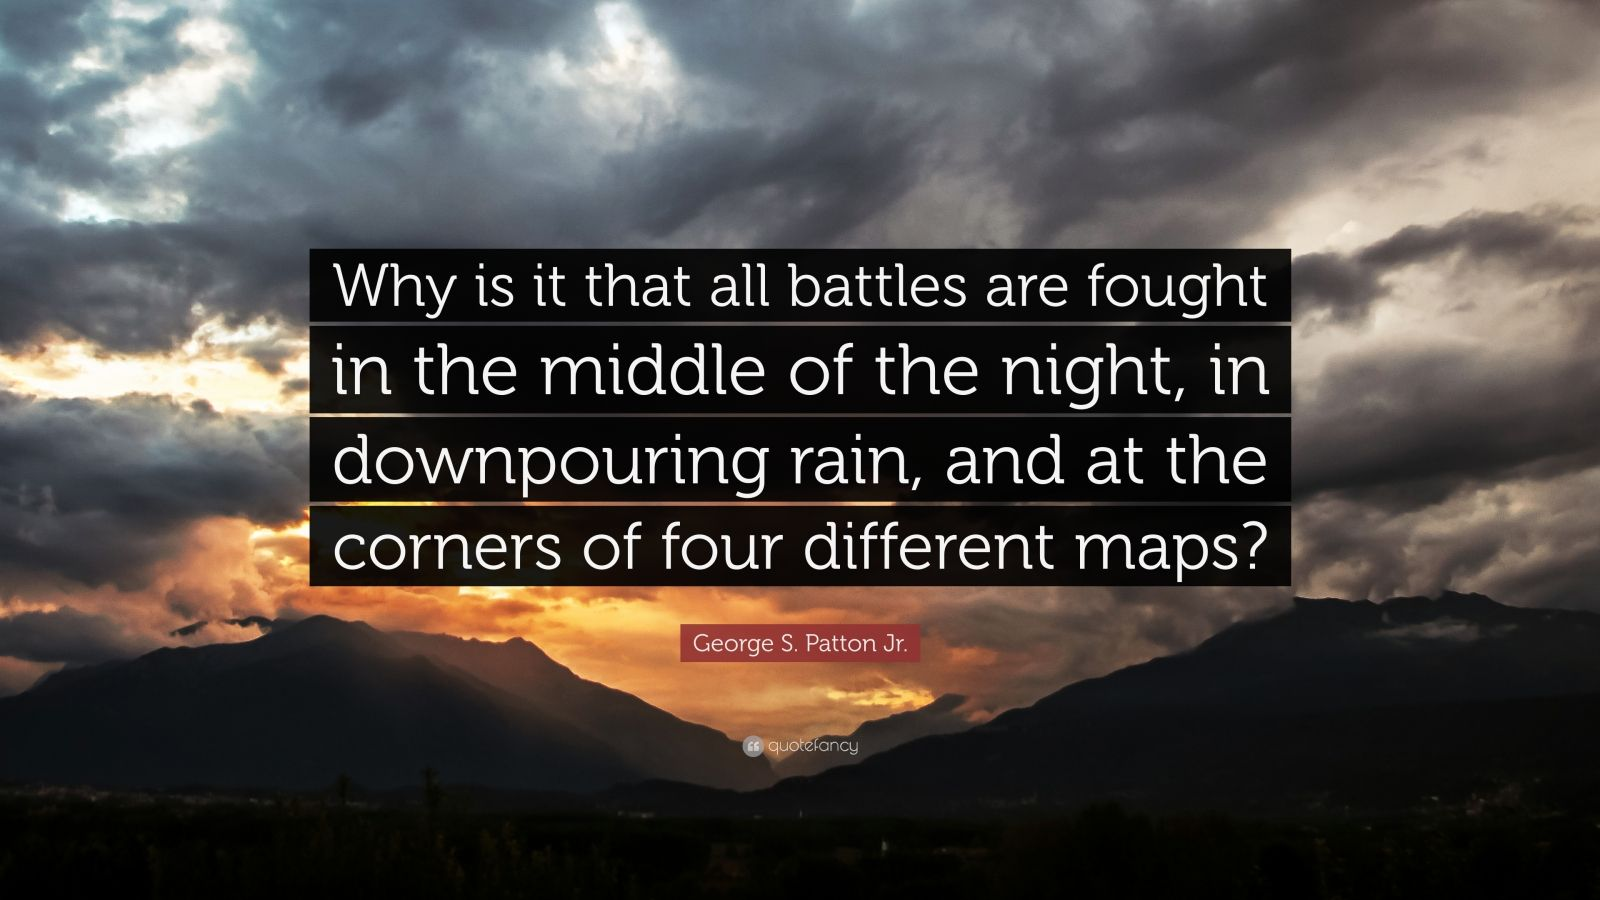 "George S. Patton Jr. Quote: ""Why is it that all battles are fought in the middle of the night, in downpouring rain, and at the corners of four different maps?"""